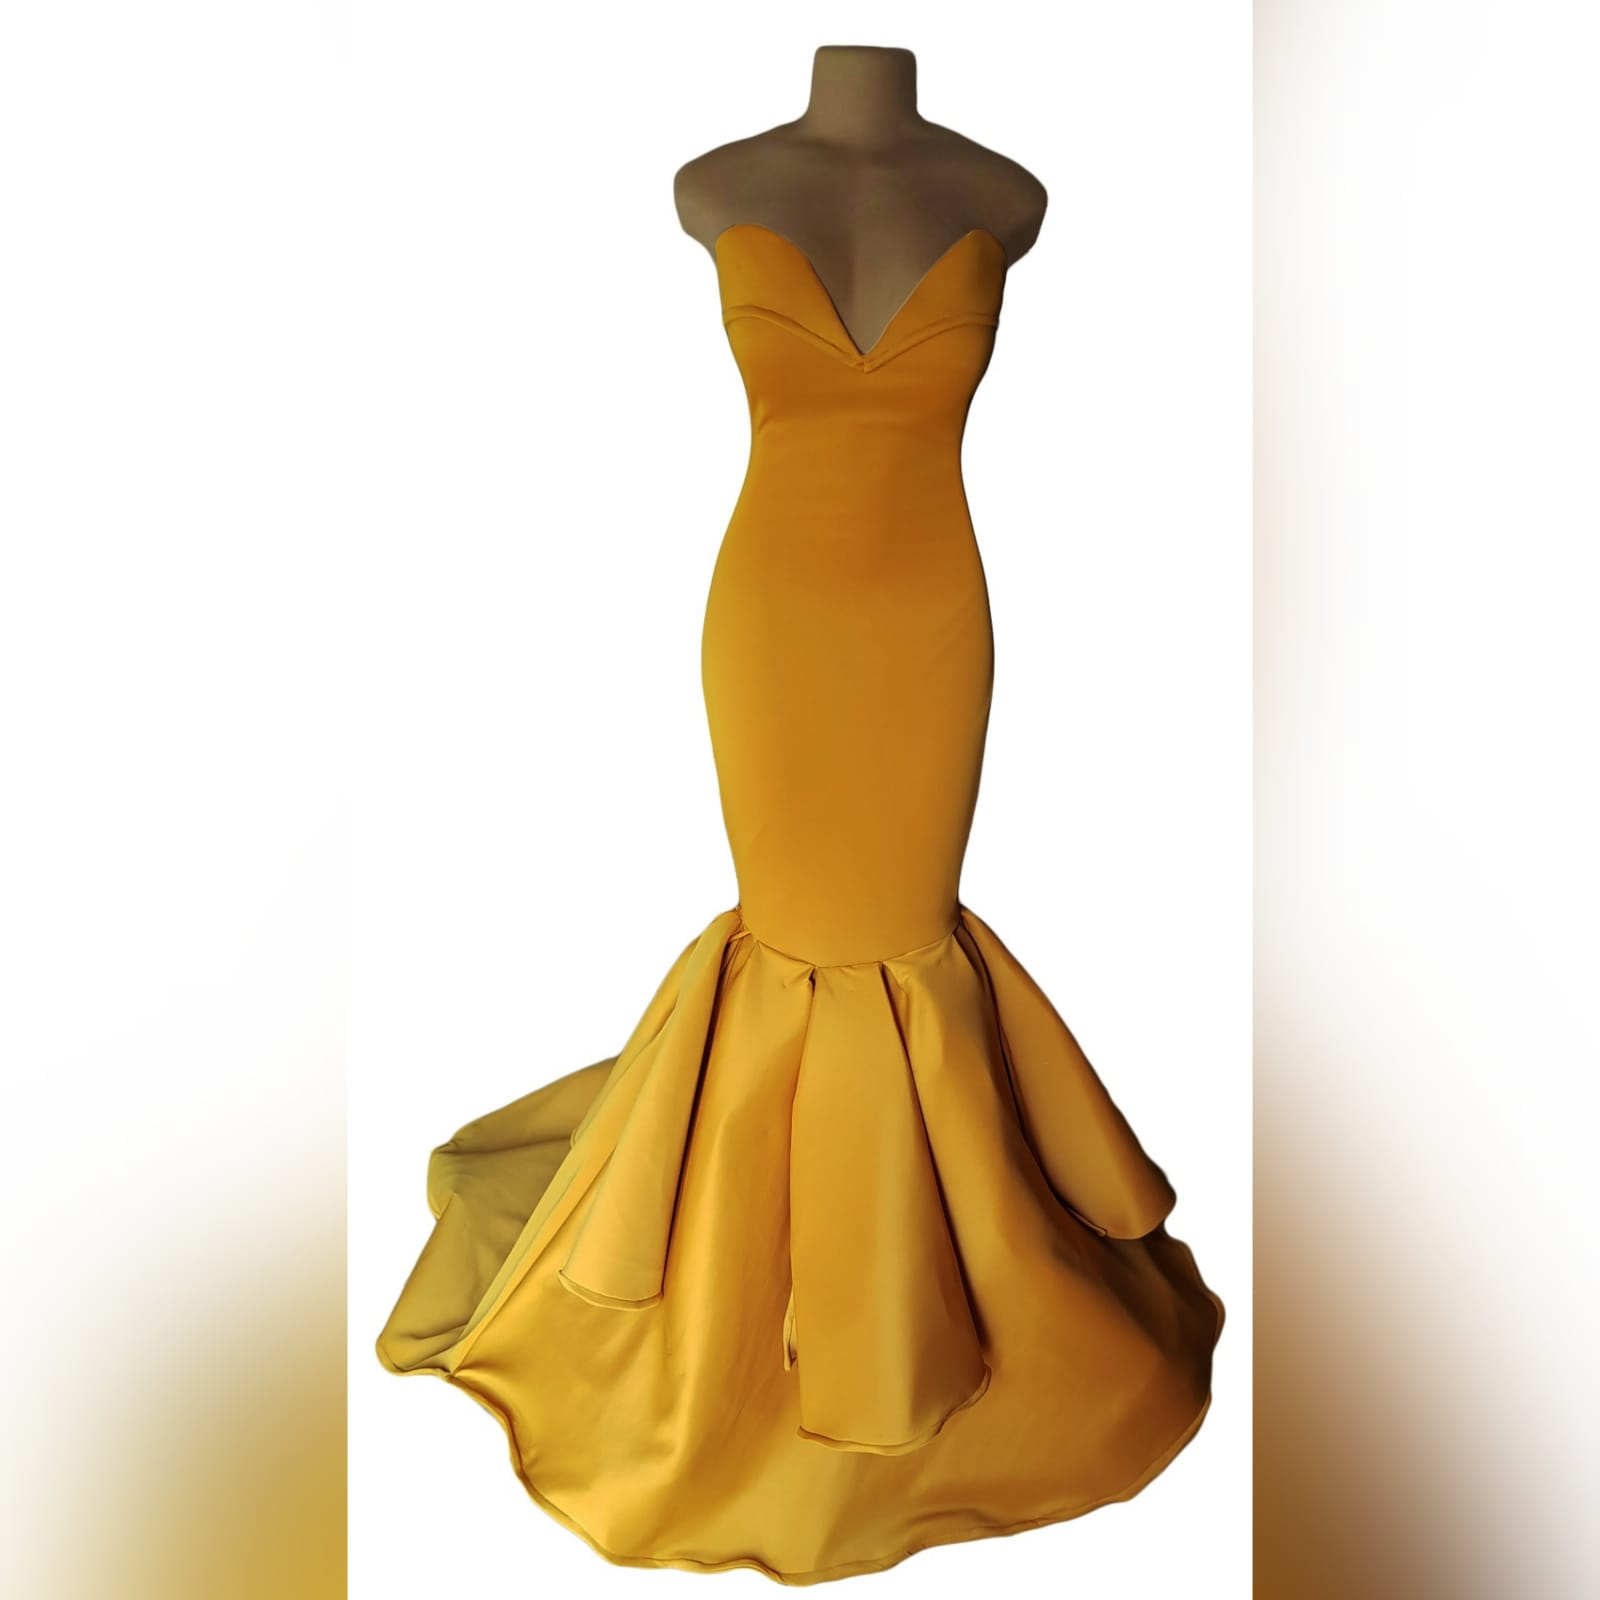 Mustard yellow sweetheart neckline mermaid prom dress 8 mustard yellow sweetheart neckline mermaid prom dress. With train and detailed stiff tubes